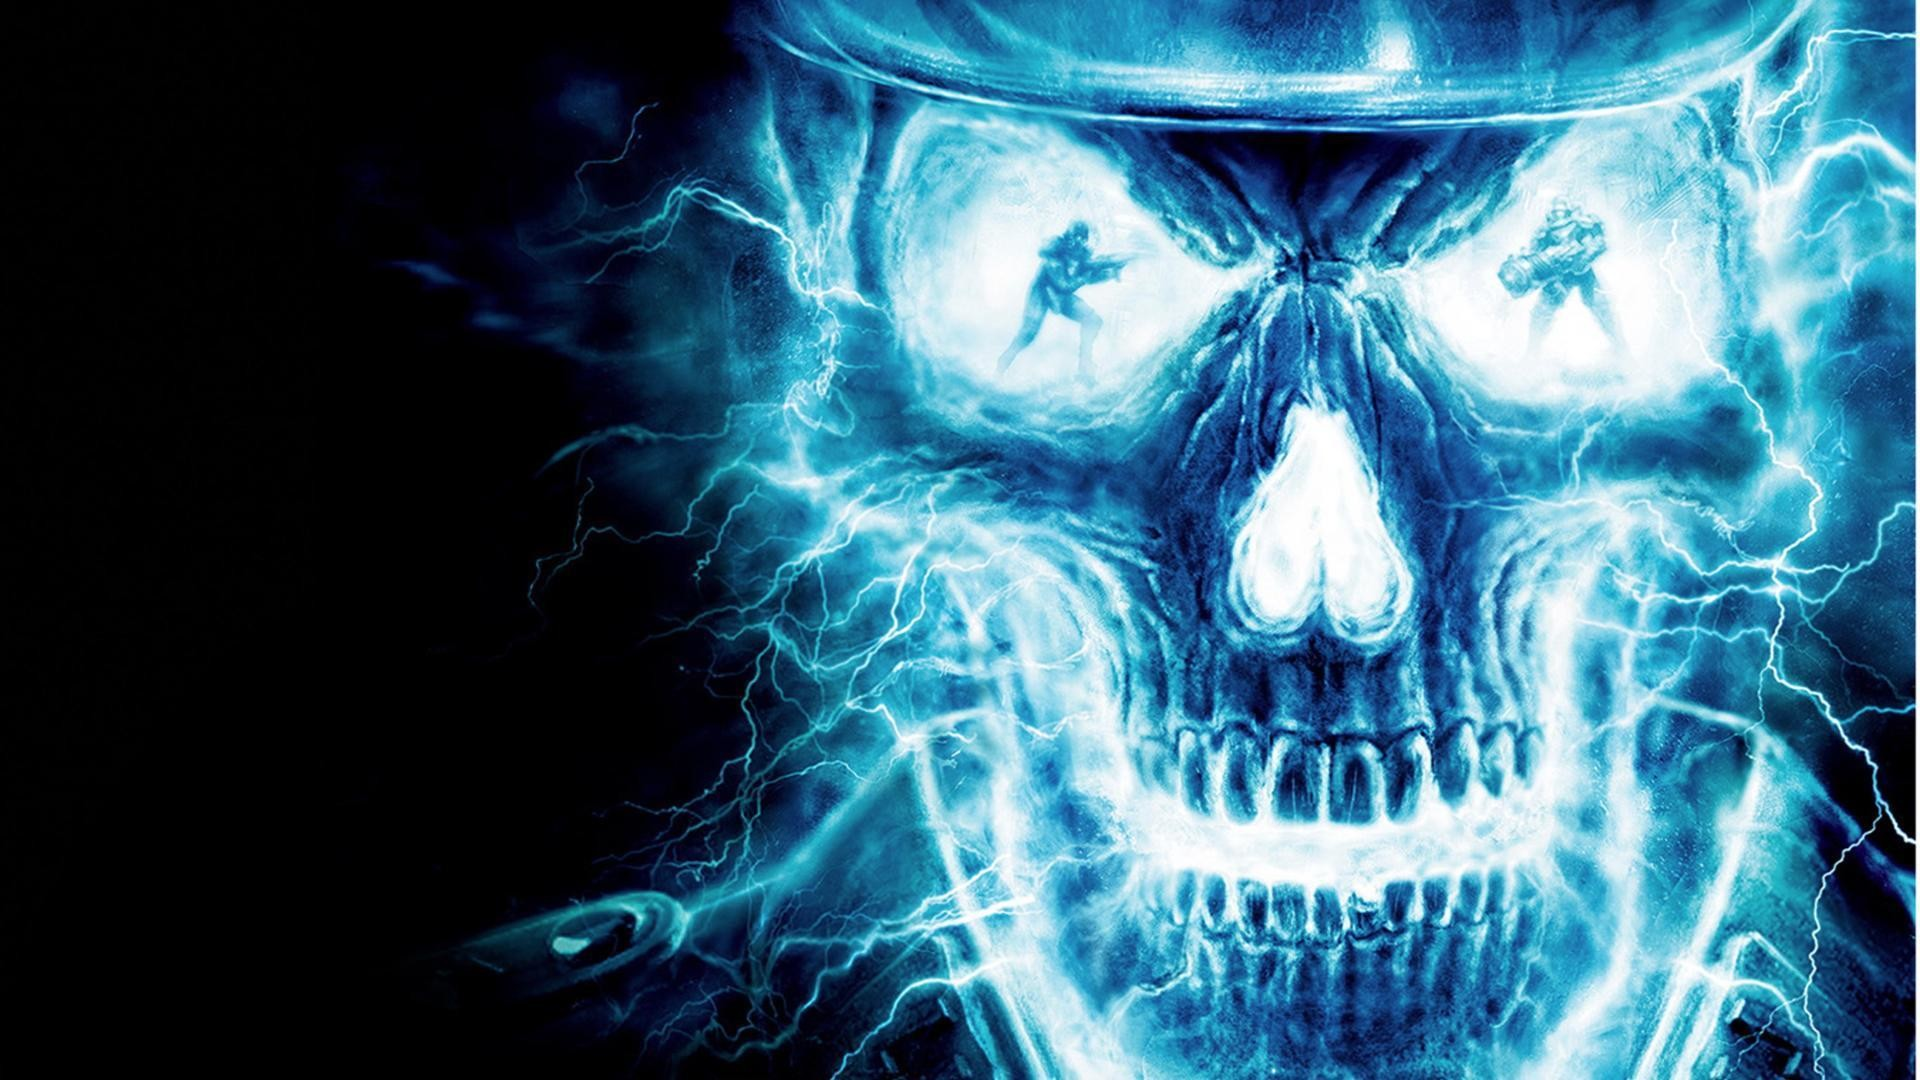 1920x1080 Wallpapers For > Blue Flaming Skull Wallpaper